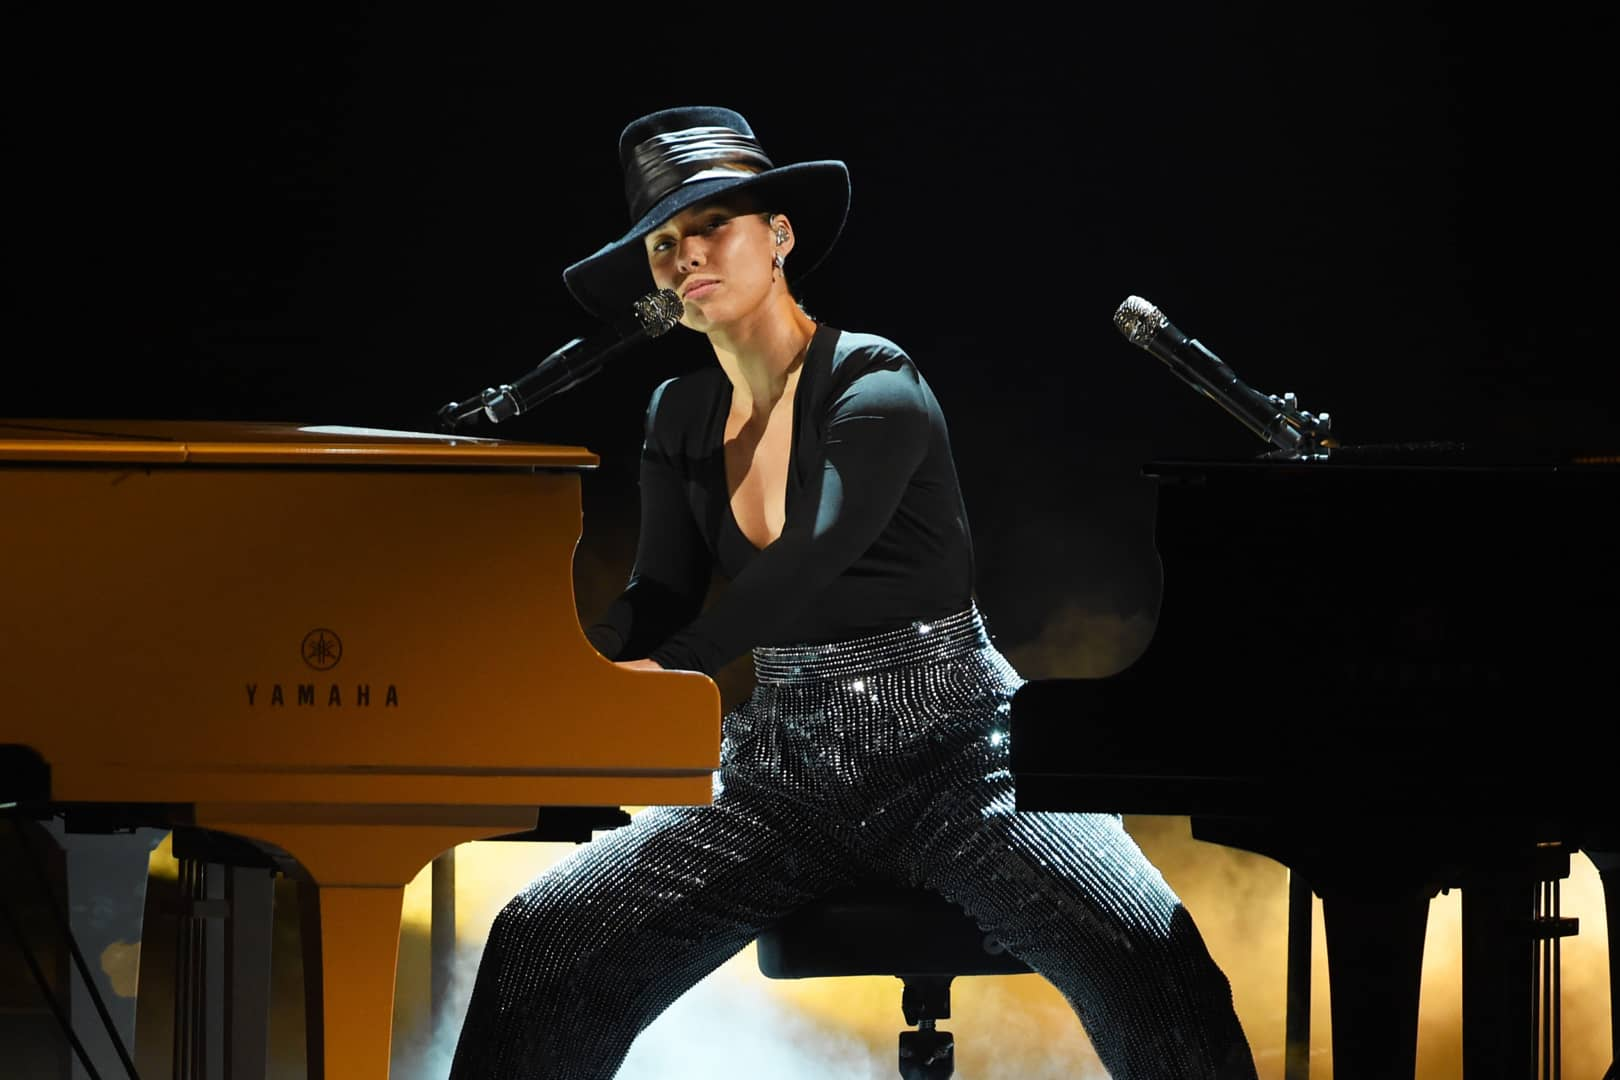 #GRAMMYs 2019: Alicia Keys sings songs she wishes she wrote (Video)